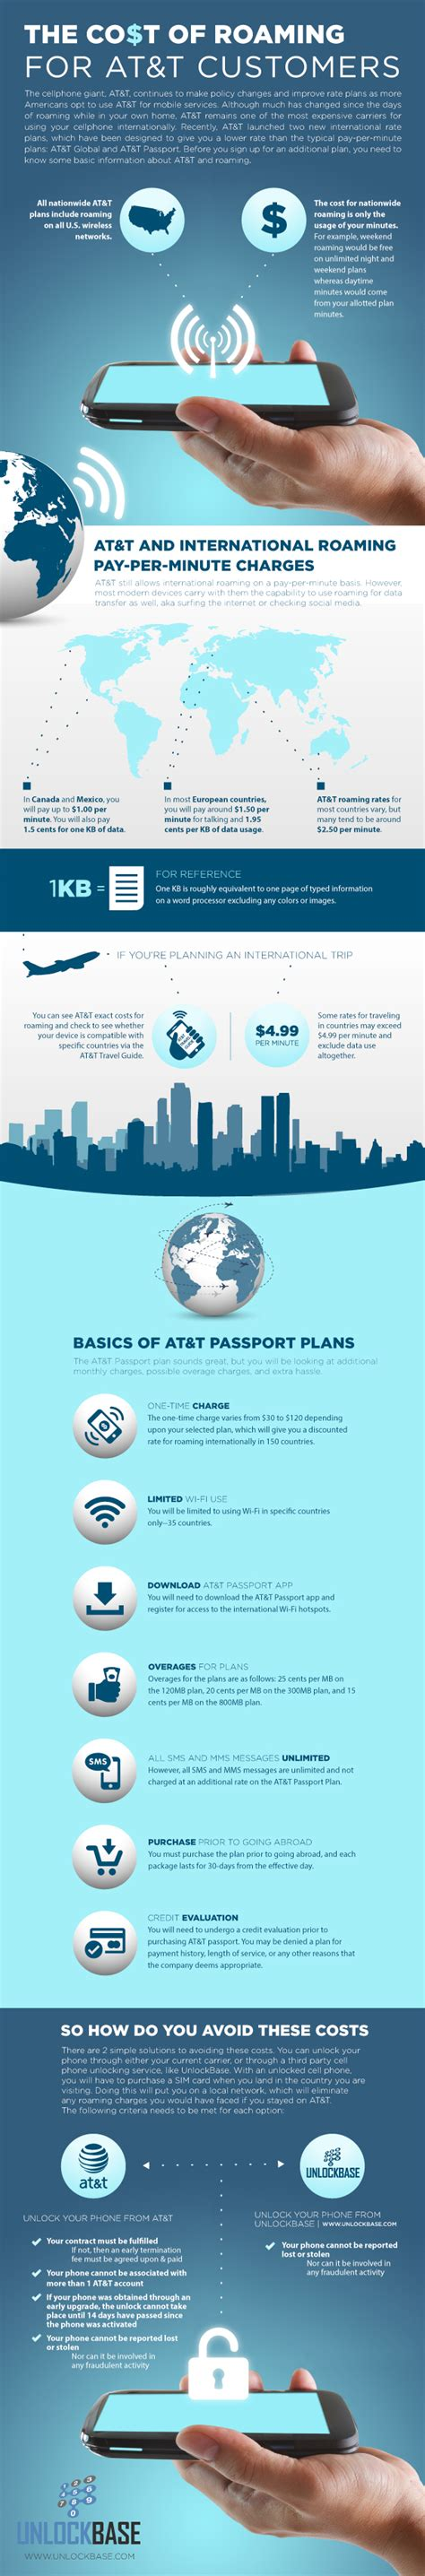 How To Upgrade Roaming On Att | unlock cell phone infographic avoid at t roaming cost